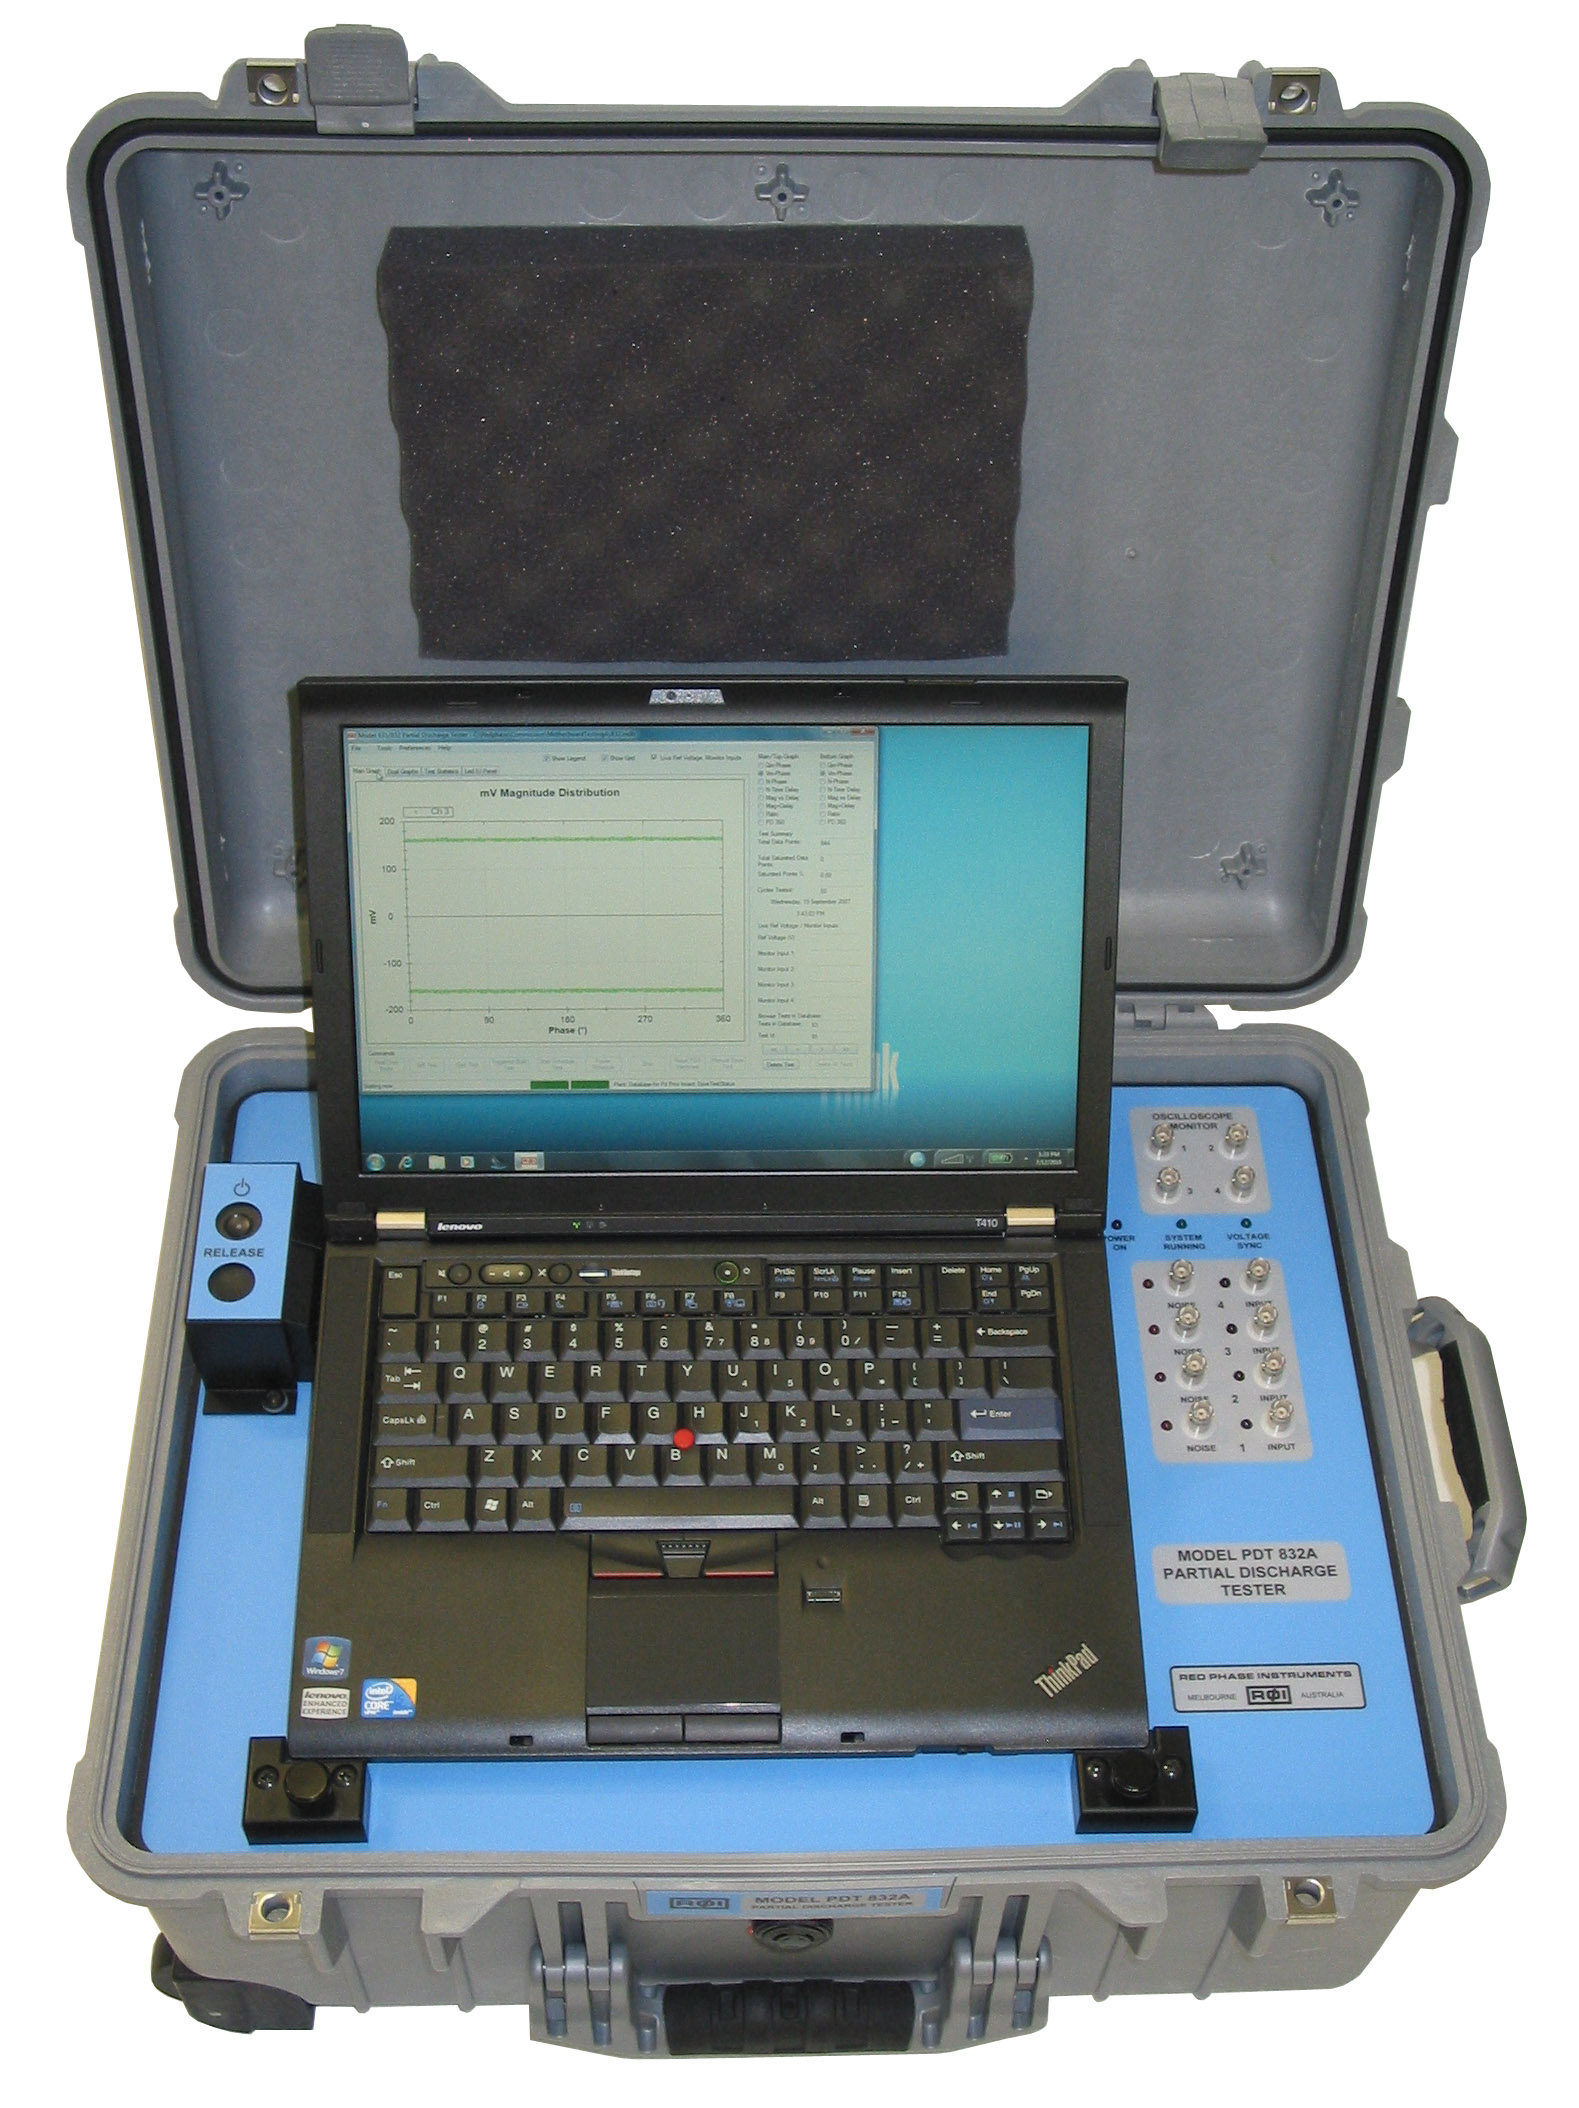 MODEL 832 PORTABLE PD TESTER